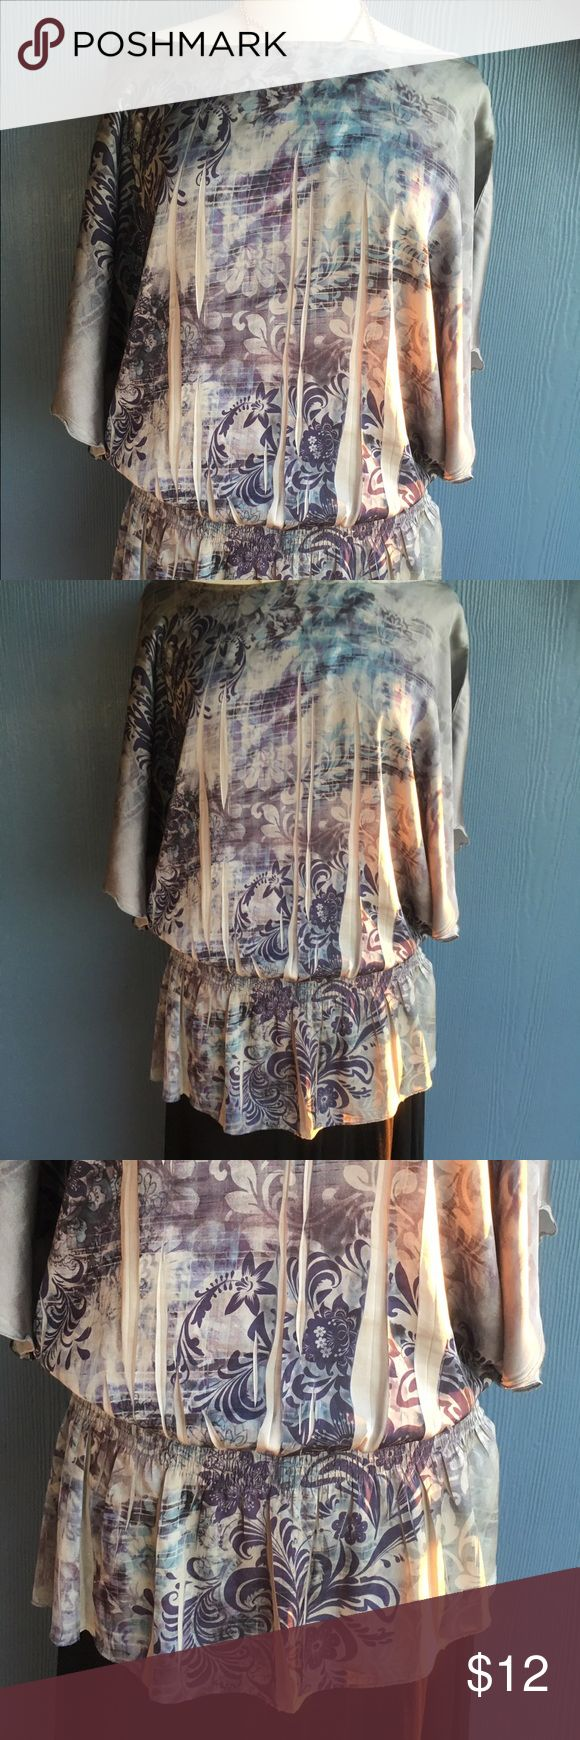 Plus size top Wide neckline that runs horizontally, front and back . Light weight silky fabric. Short sleeve bat wing style. Has a gathered waist. Excellent used condition Worthington Tops Blouses